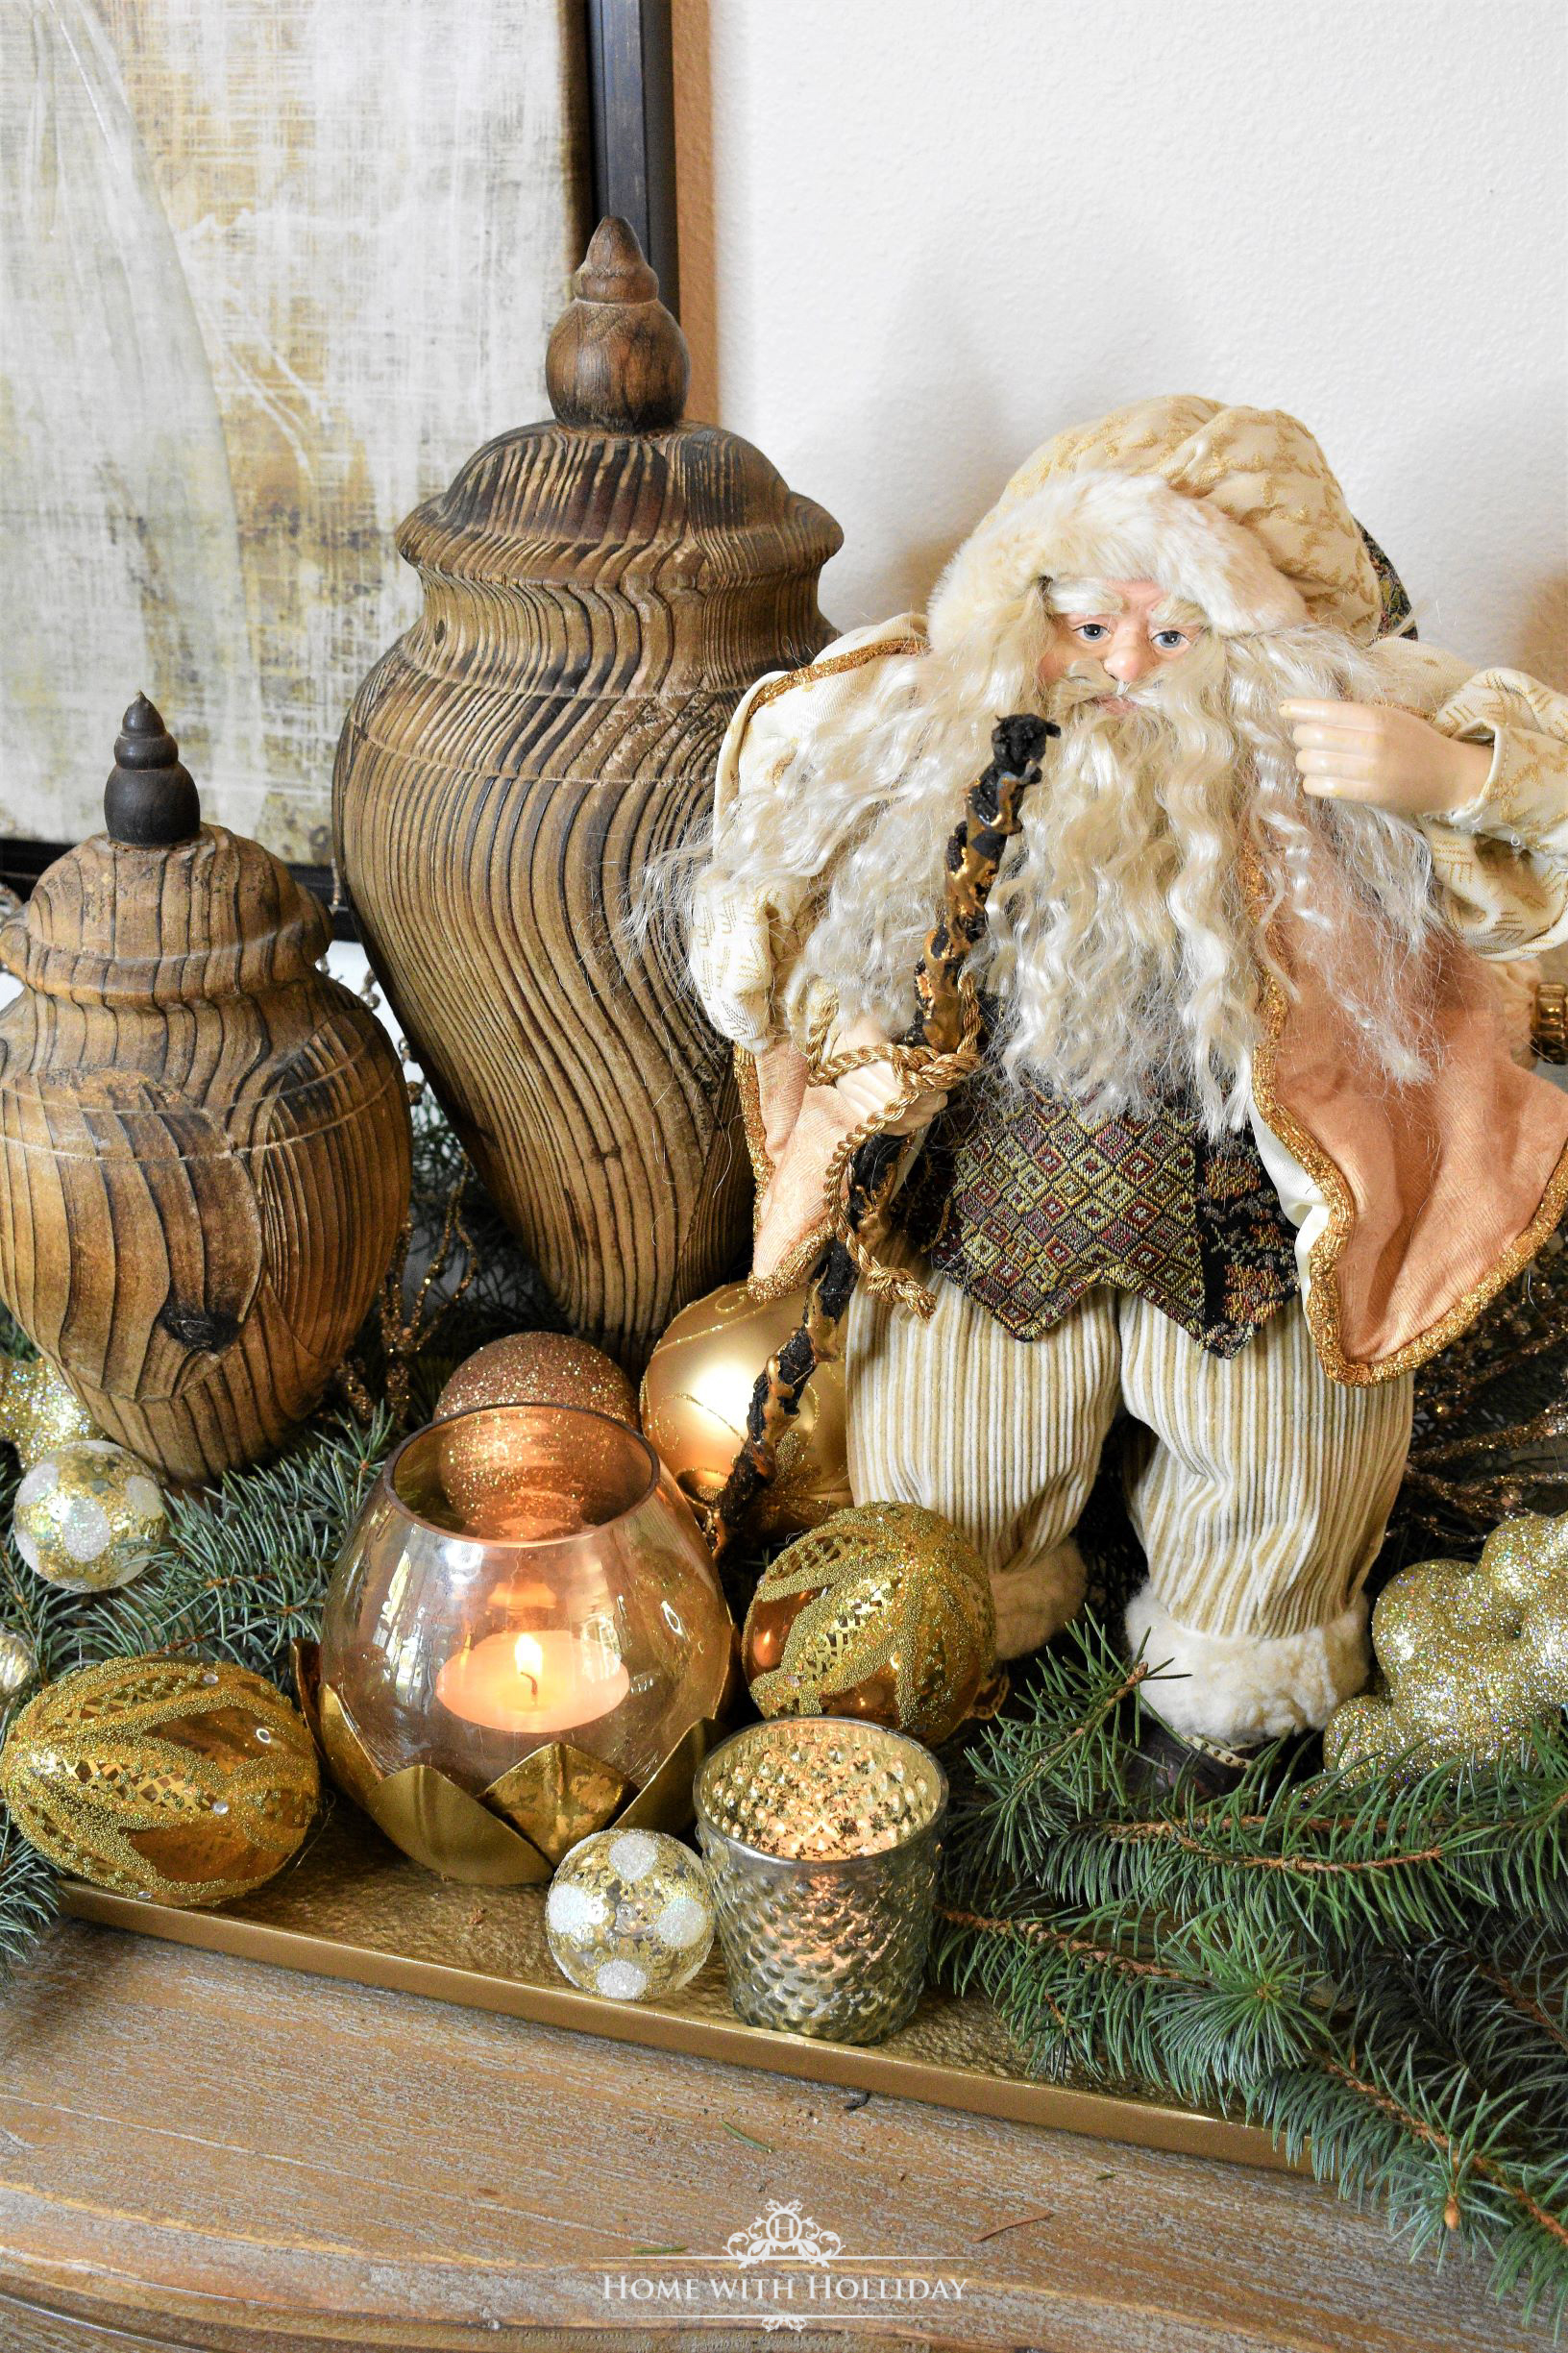 Decorating a Tray for Christmas 6 Ways - Fancy Santa - Home with Holliday